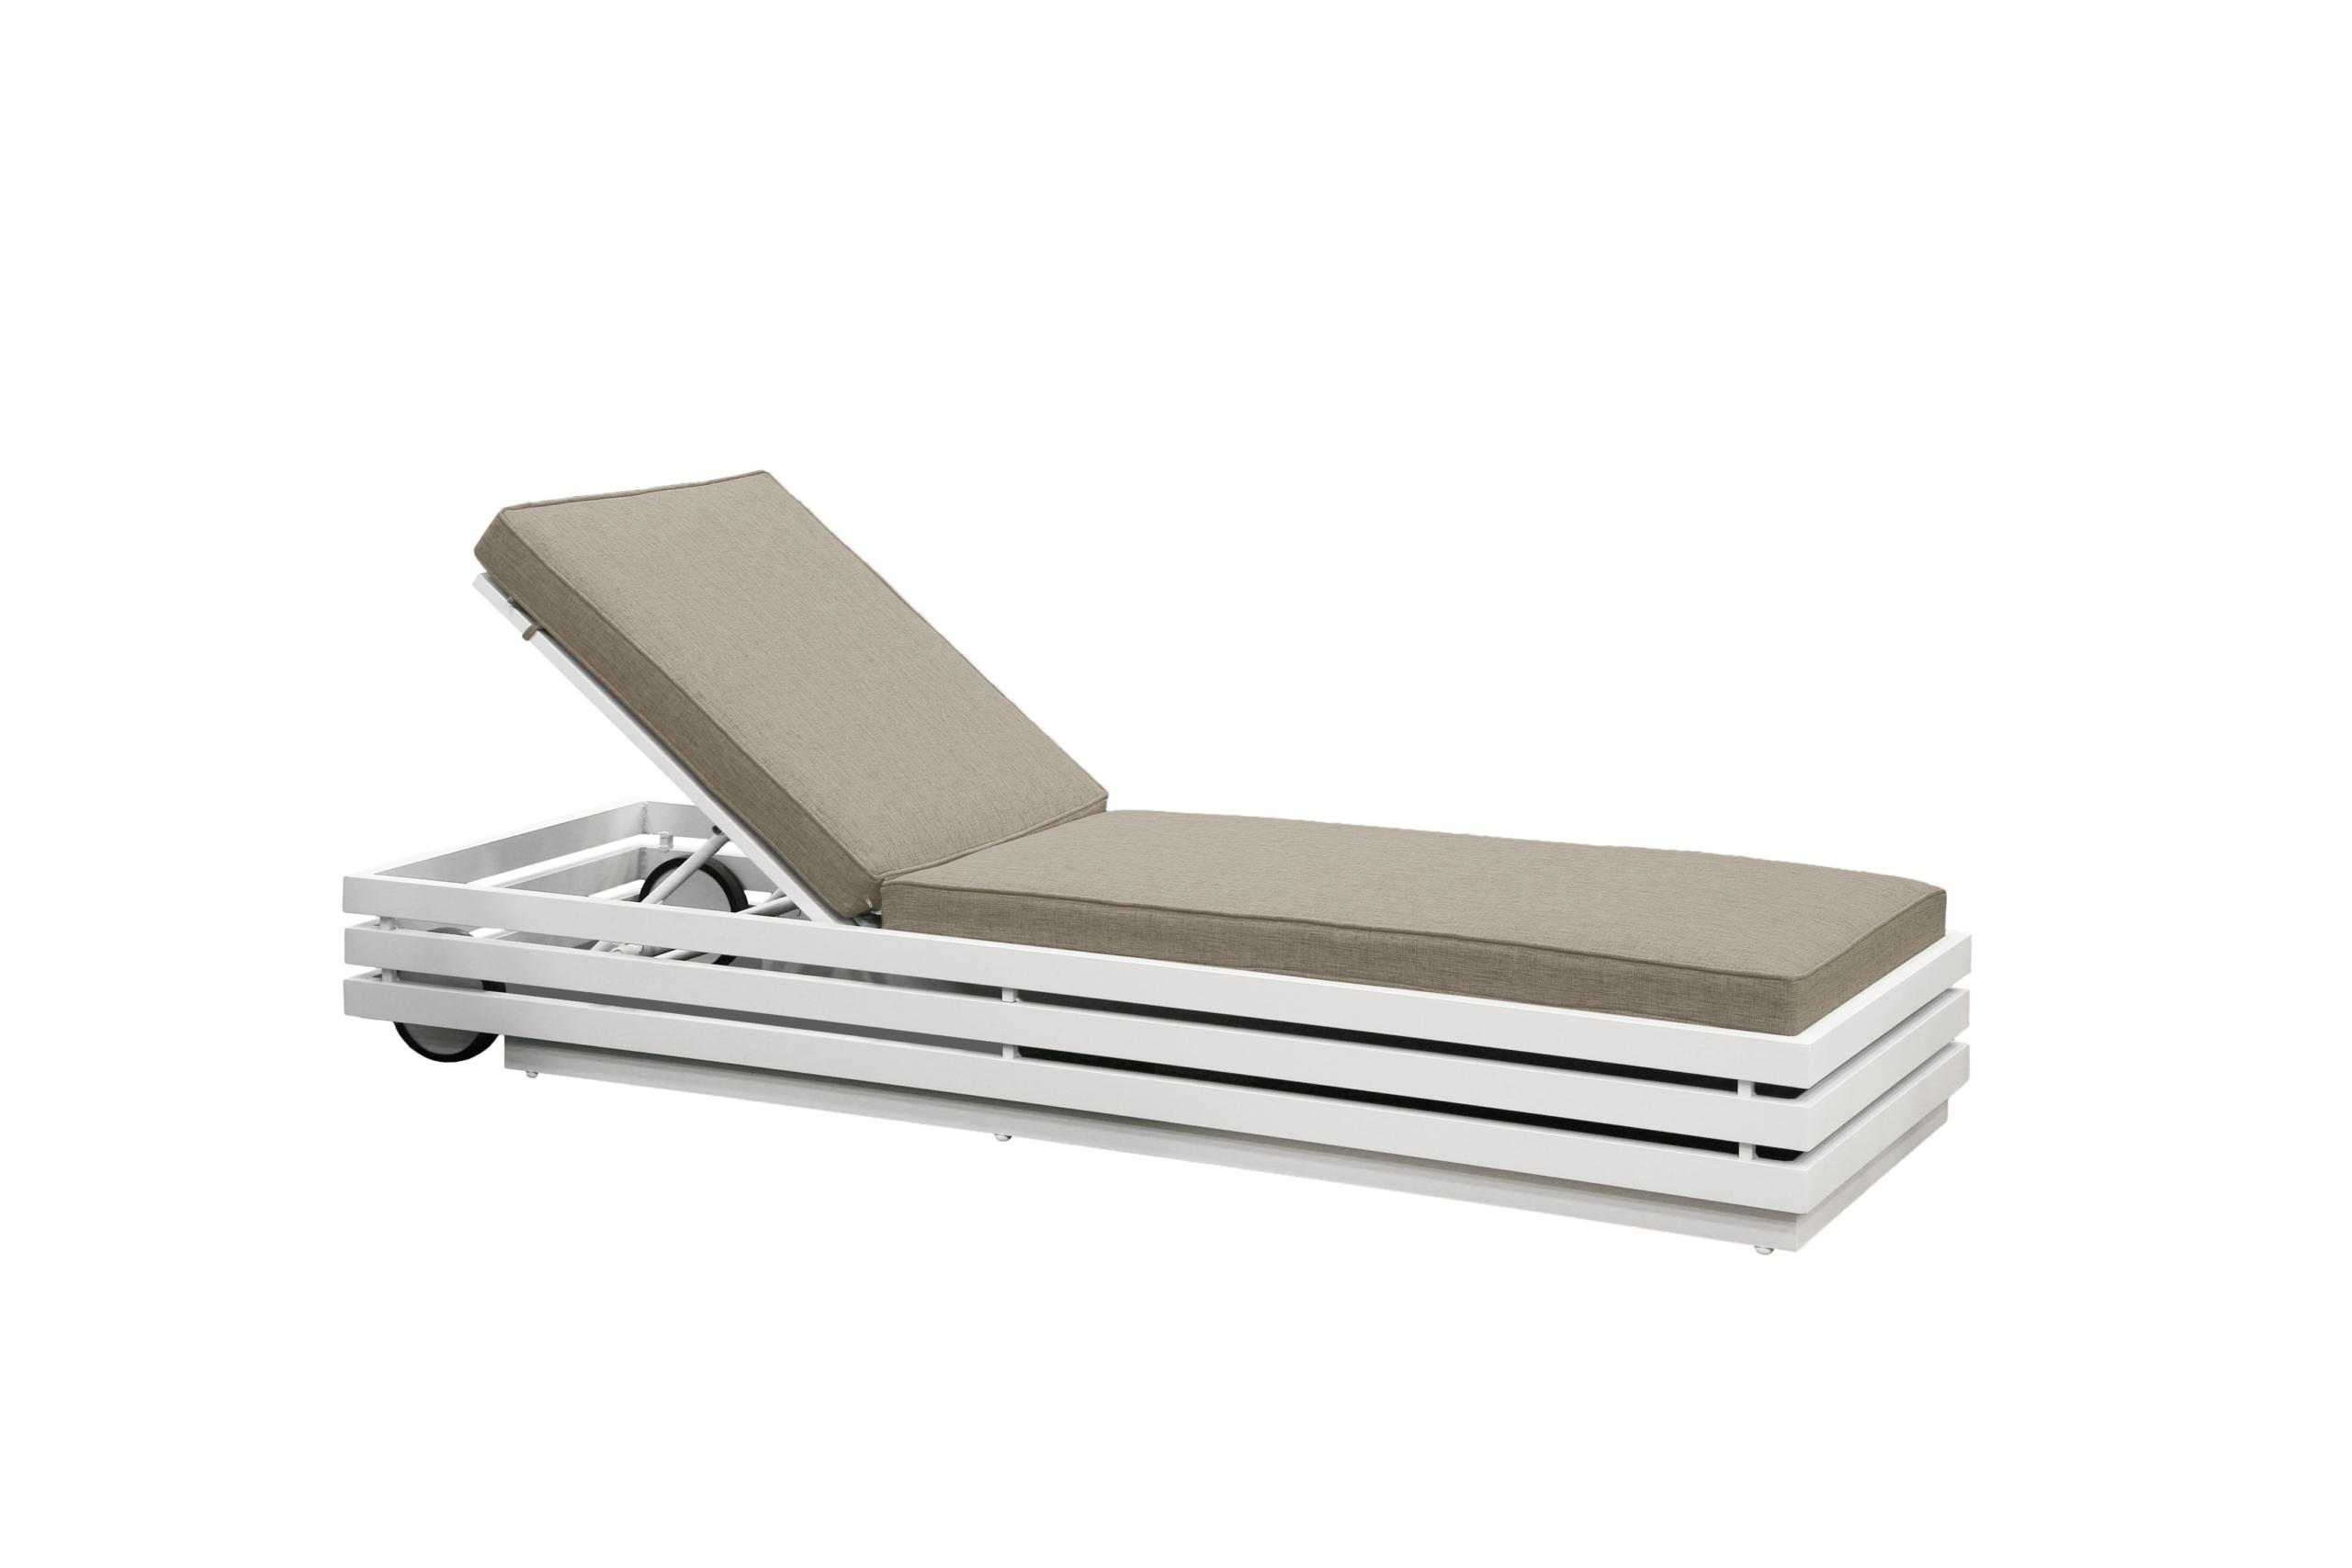 white and stone aluminium and all weather fabric sun lounger